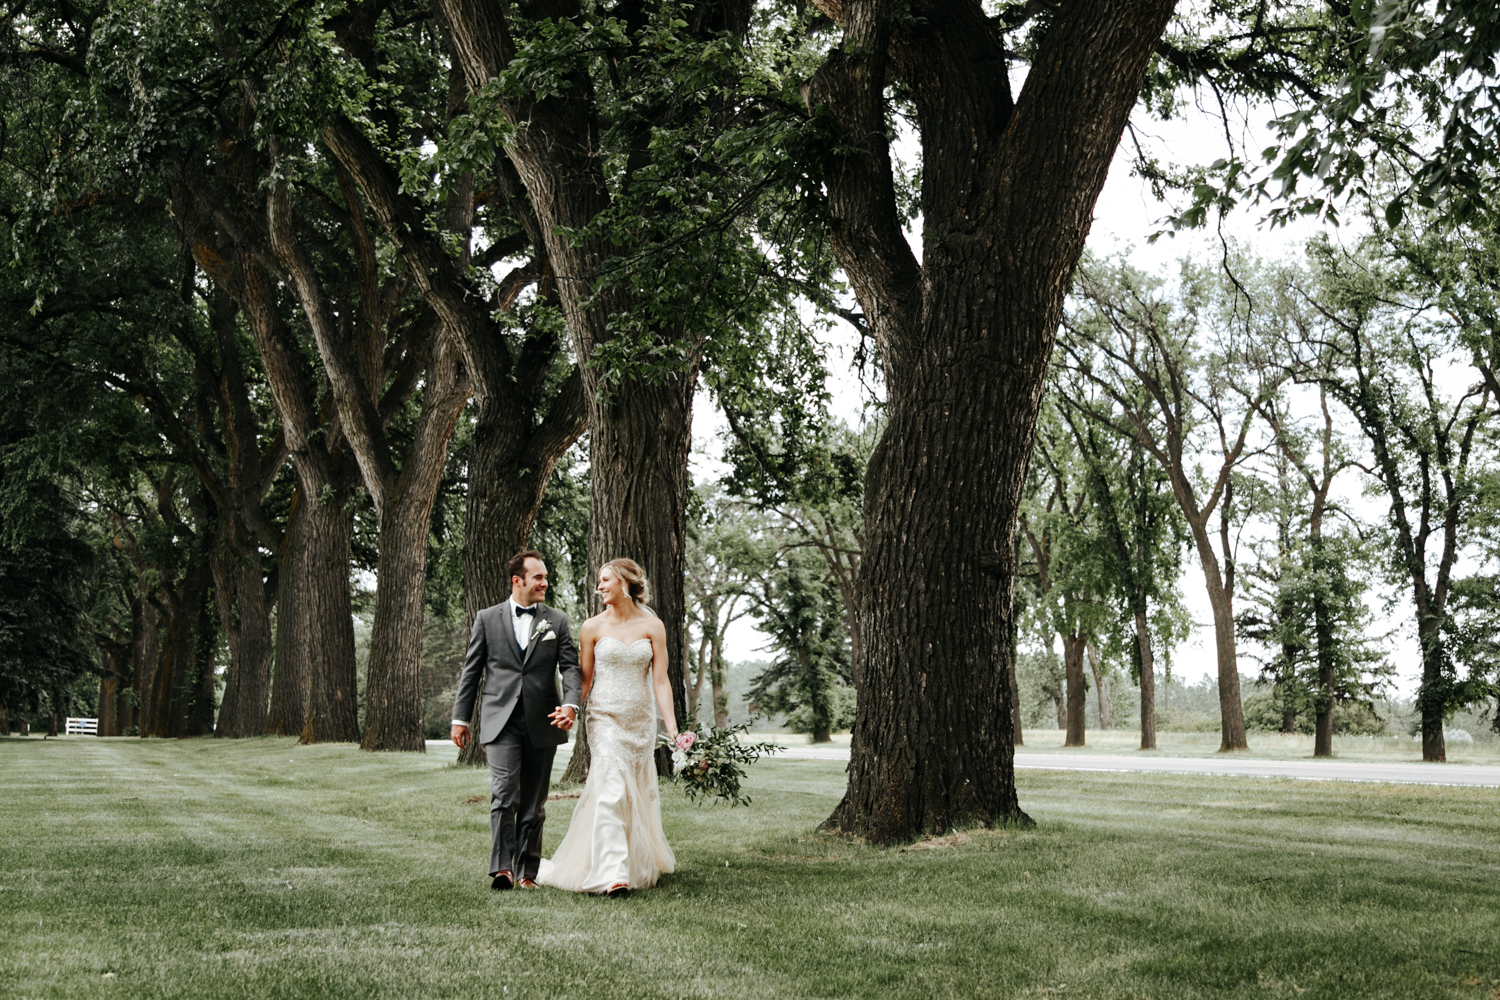 lethbridge-wedding-photographer-love-and-be-loved-photography-bailey-joel-lethbridge-wedding-picture-image-photo-66.jpg